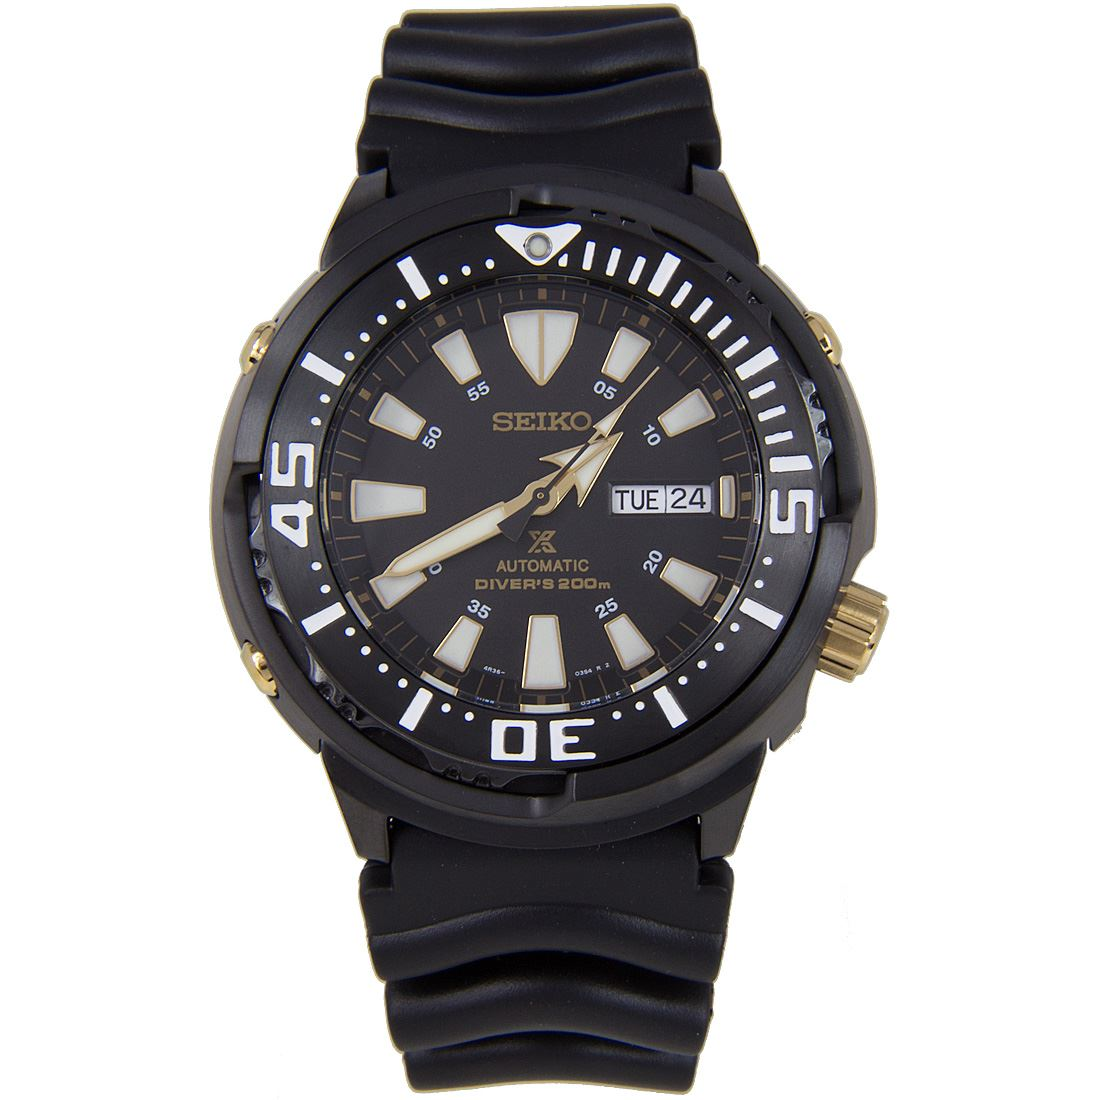 Seiko Prospex Baby Tuna Replica Watch Releases